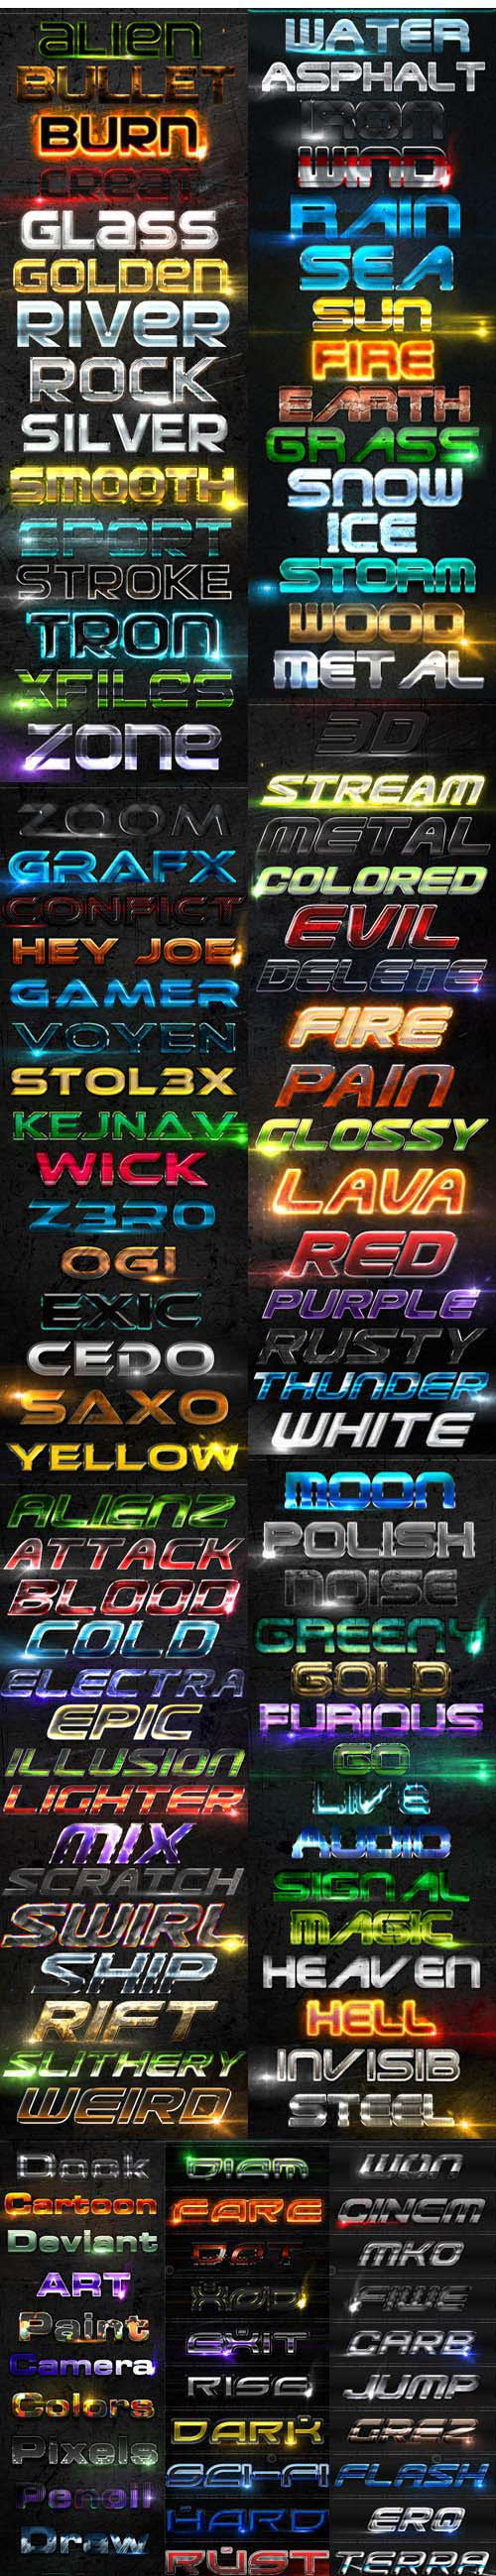 132 Awesome Text Effects & Styles for Photoshop